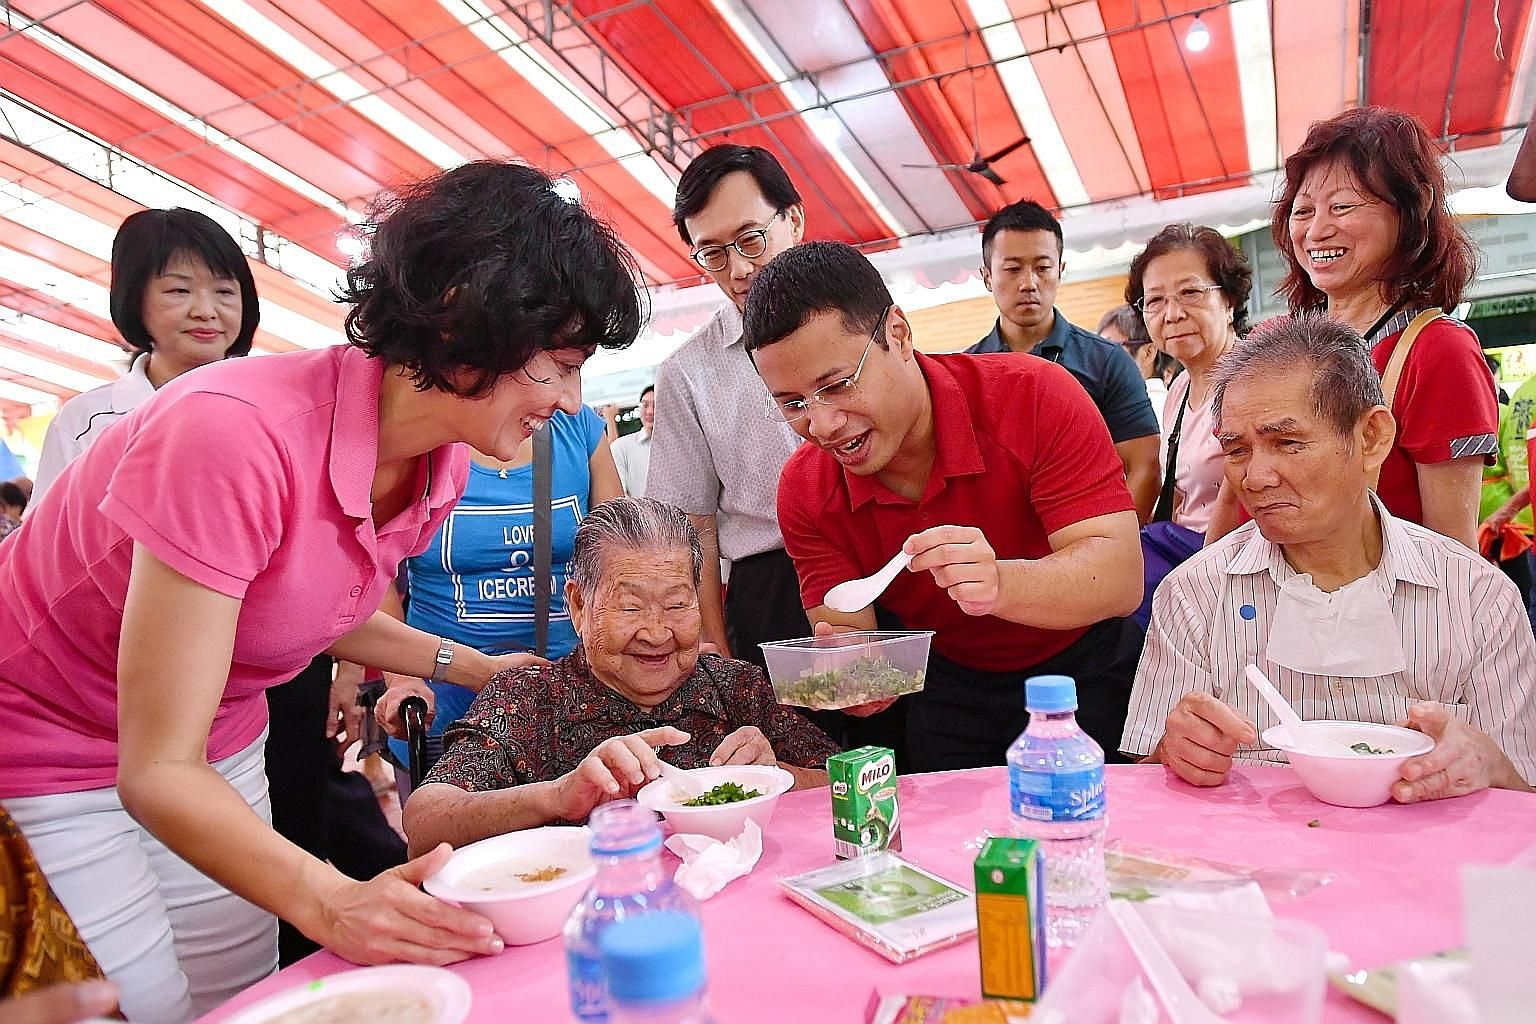 MP for Tanjong Pagar GRC Joan Pereira and Minister for Social and Family Development Desmond Lee serving porridge to Madam Wan Lau Lui, 93, and her friends at Bukit Merah View Square yesterday, as part of the Hot, Happy & Healthy Meal project to help